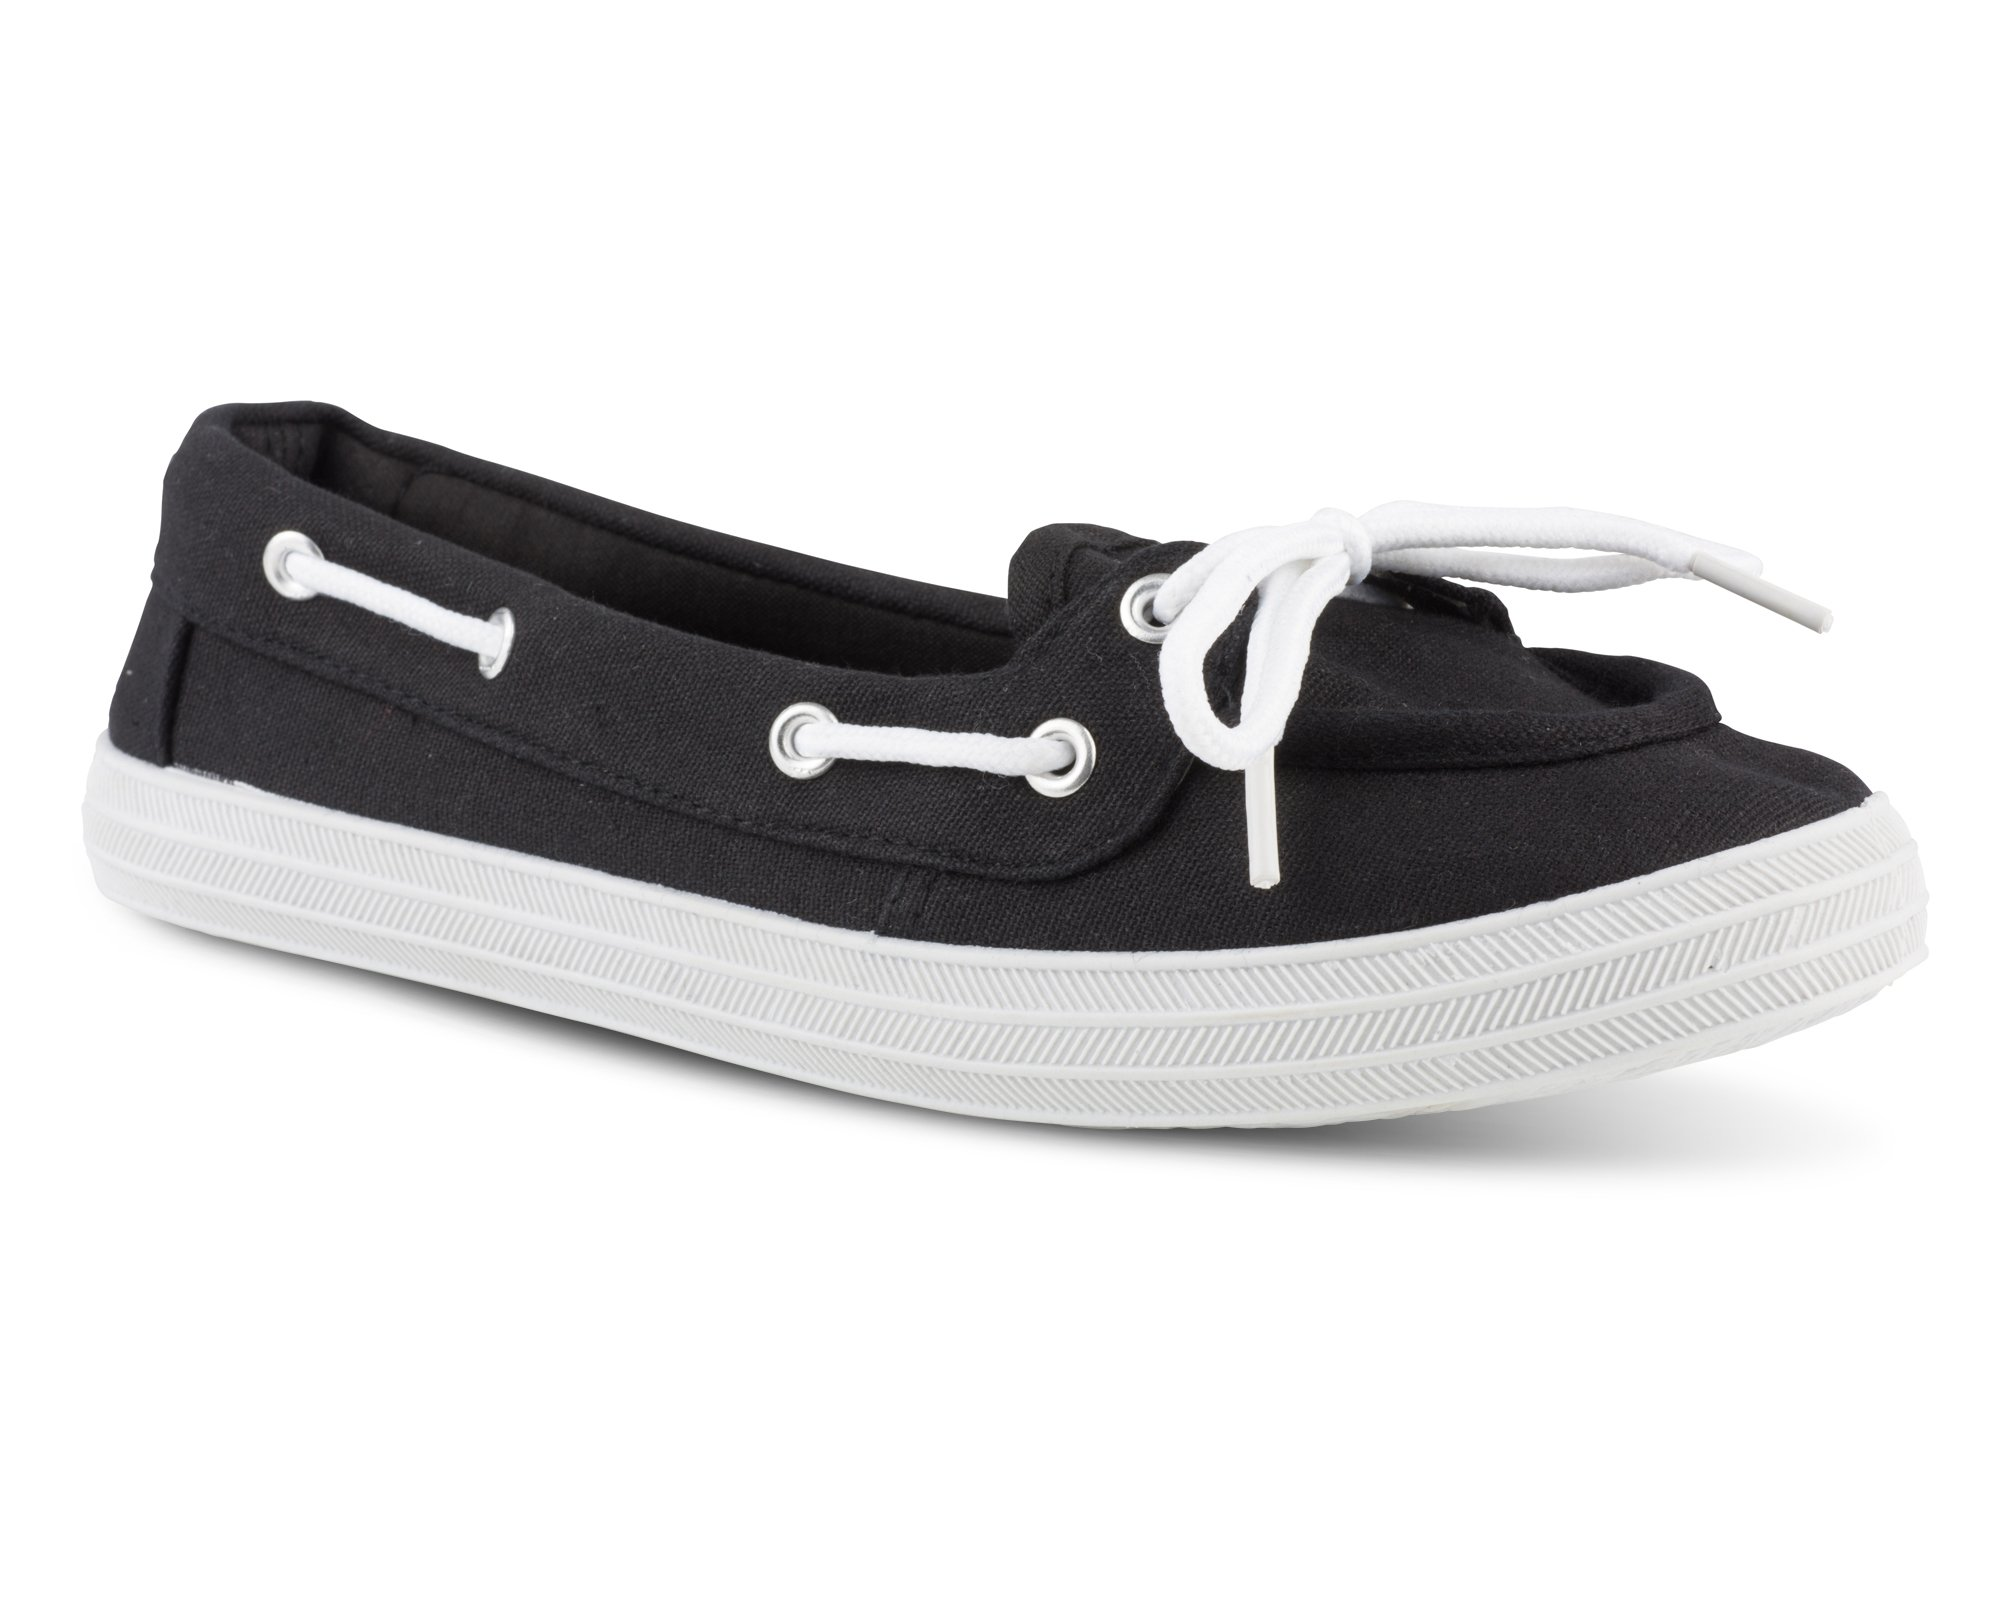 Twisted Women's Canvas Athletic Boat Shoe - CHAMPION11BLACK, Size 9